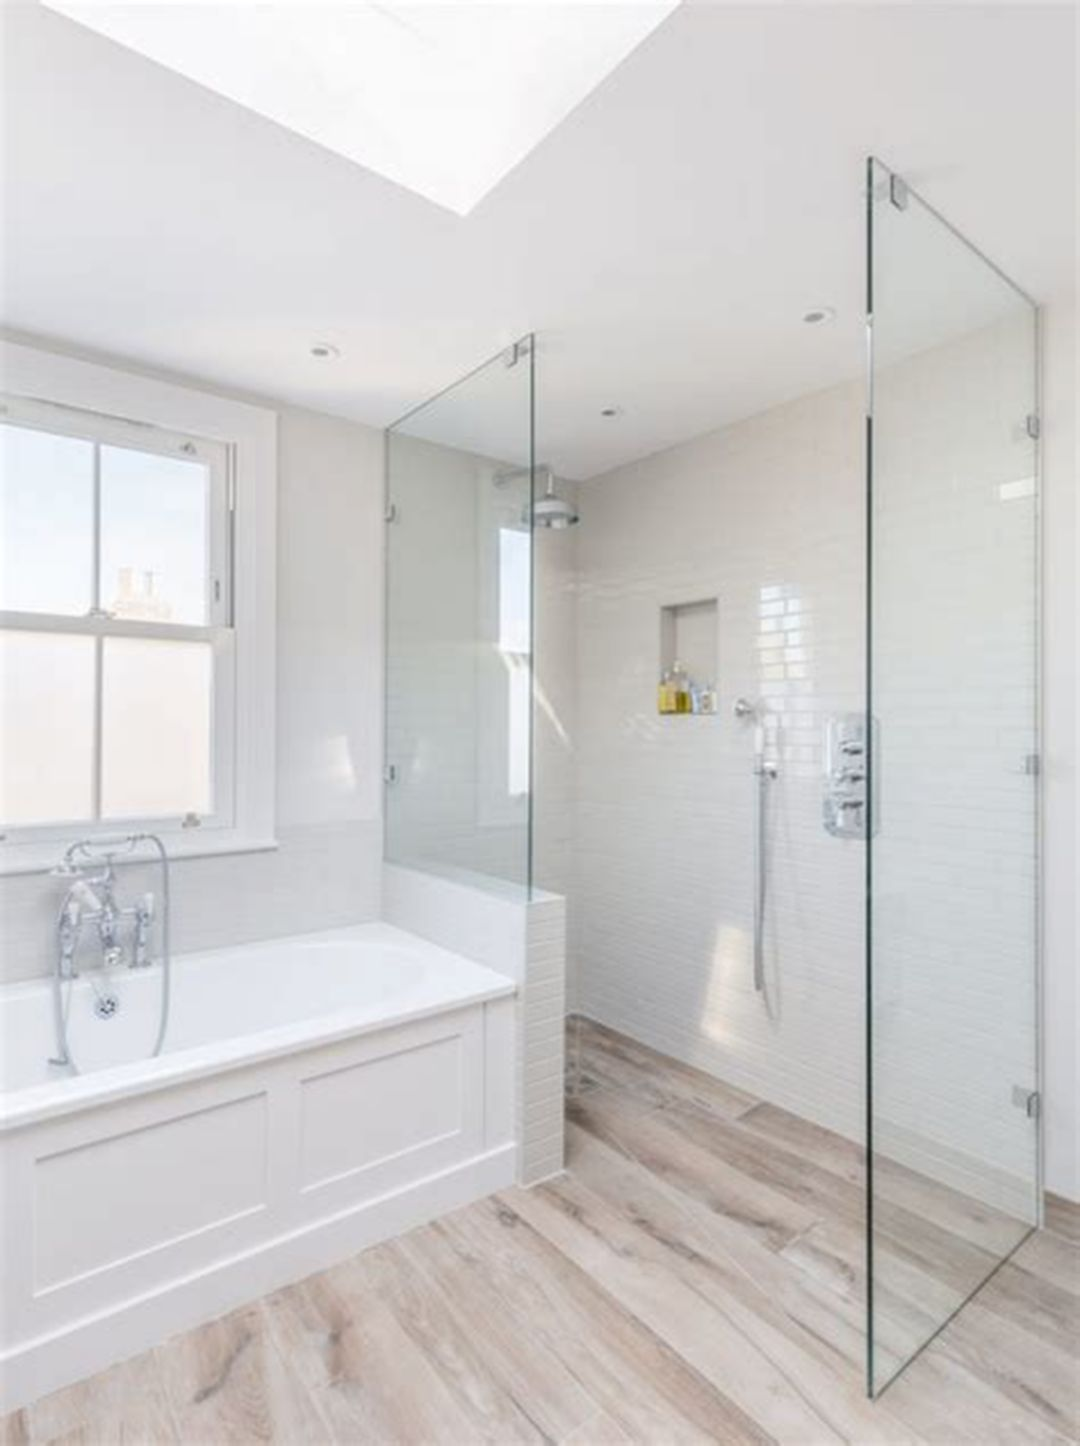 Top 8 Awesome Wood Tile Bathroom Ideas You Should To Copy In 2020 Wood Floor Bathroom Wood Tile Bathroom Wood Tile Shower